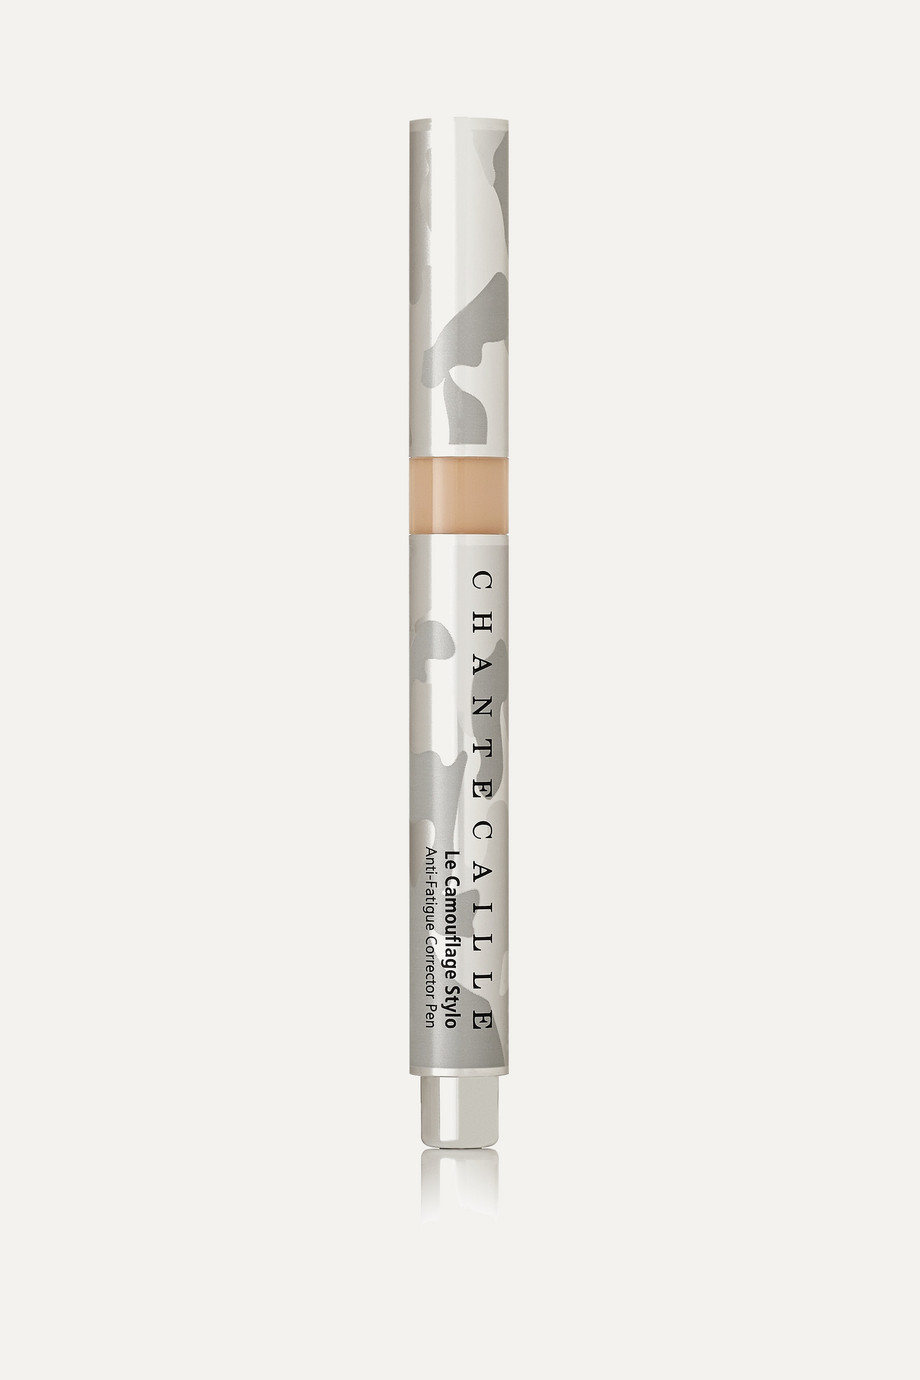 Chantecaille Le Camouflage Stylo - 2, 1.8ml